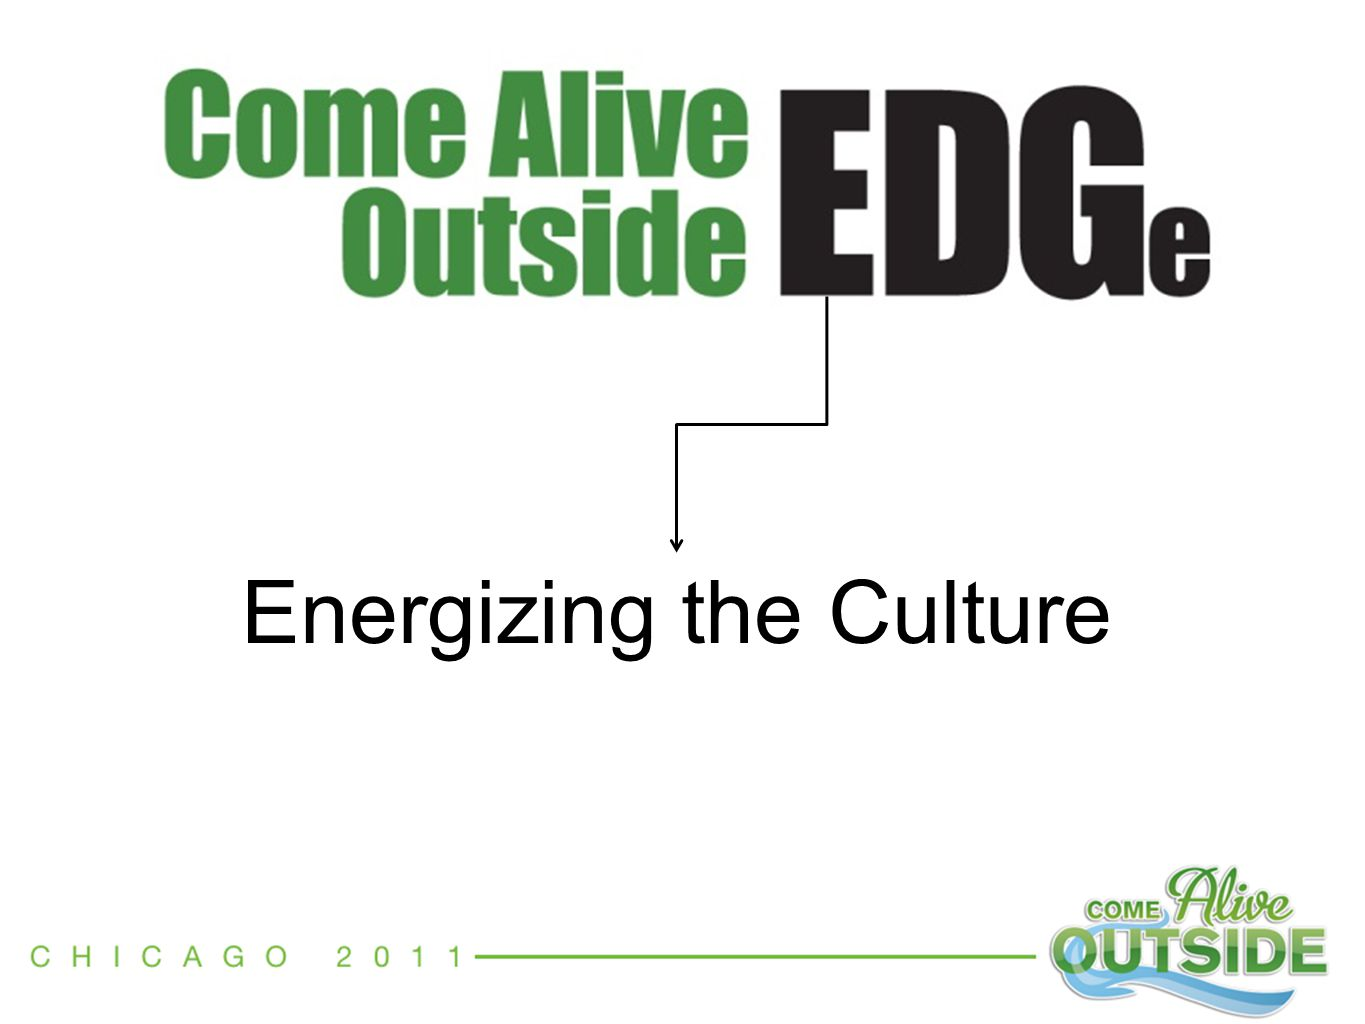 Energizing the Culture